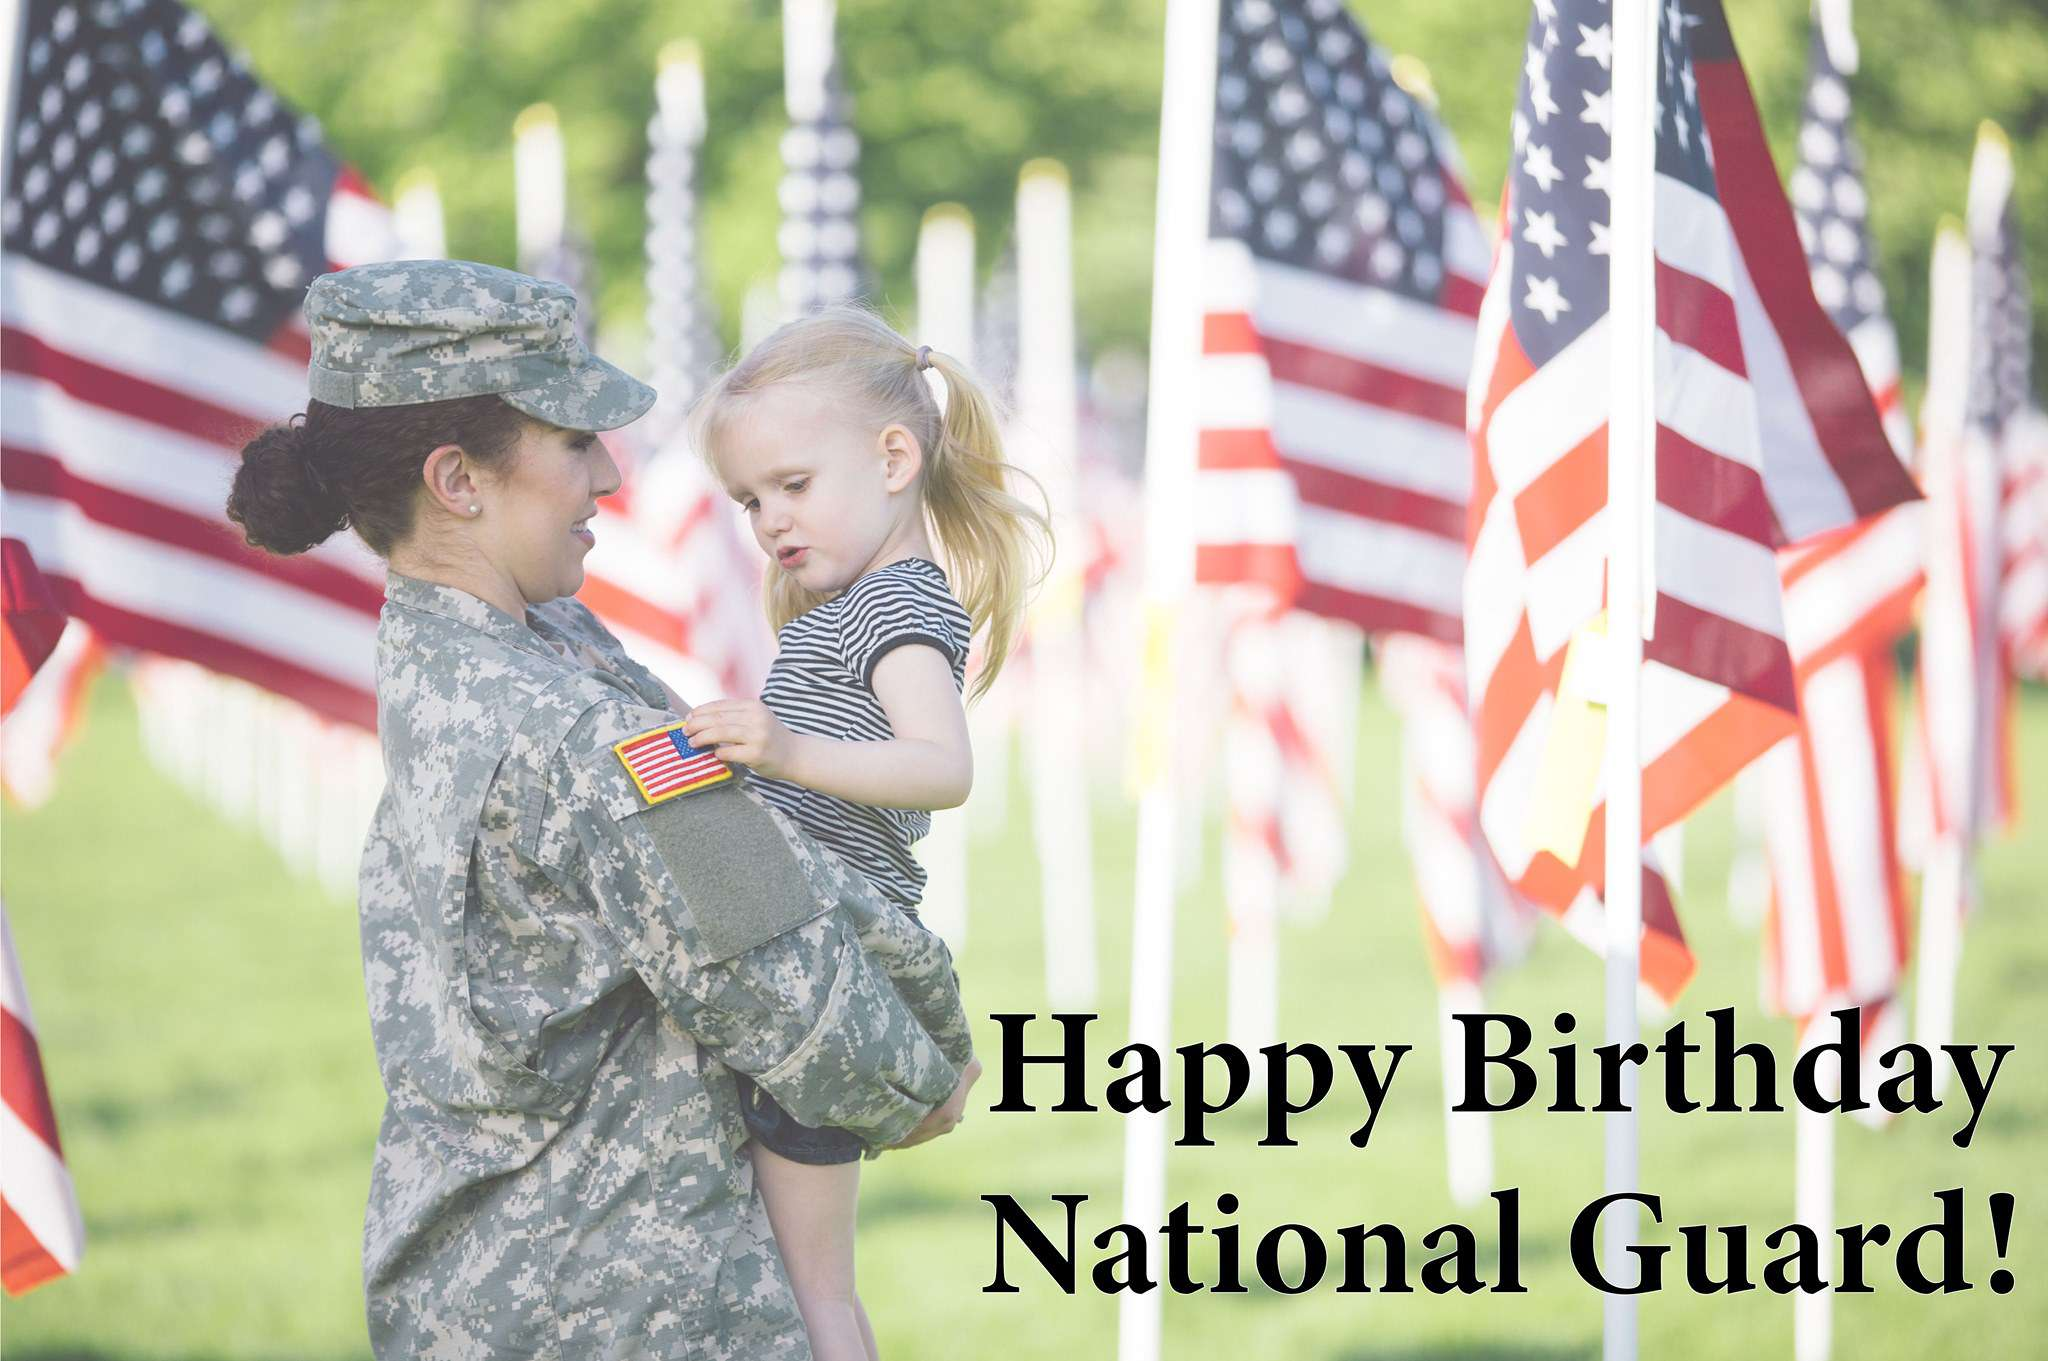 U.S. National Guard Birthday Wishes Awesome Images, Pictures, Photos, Wallpapers